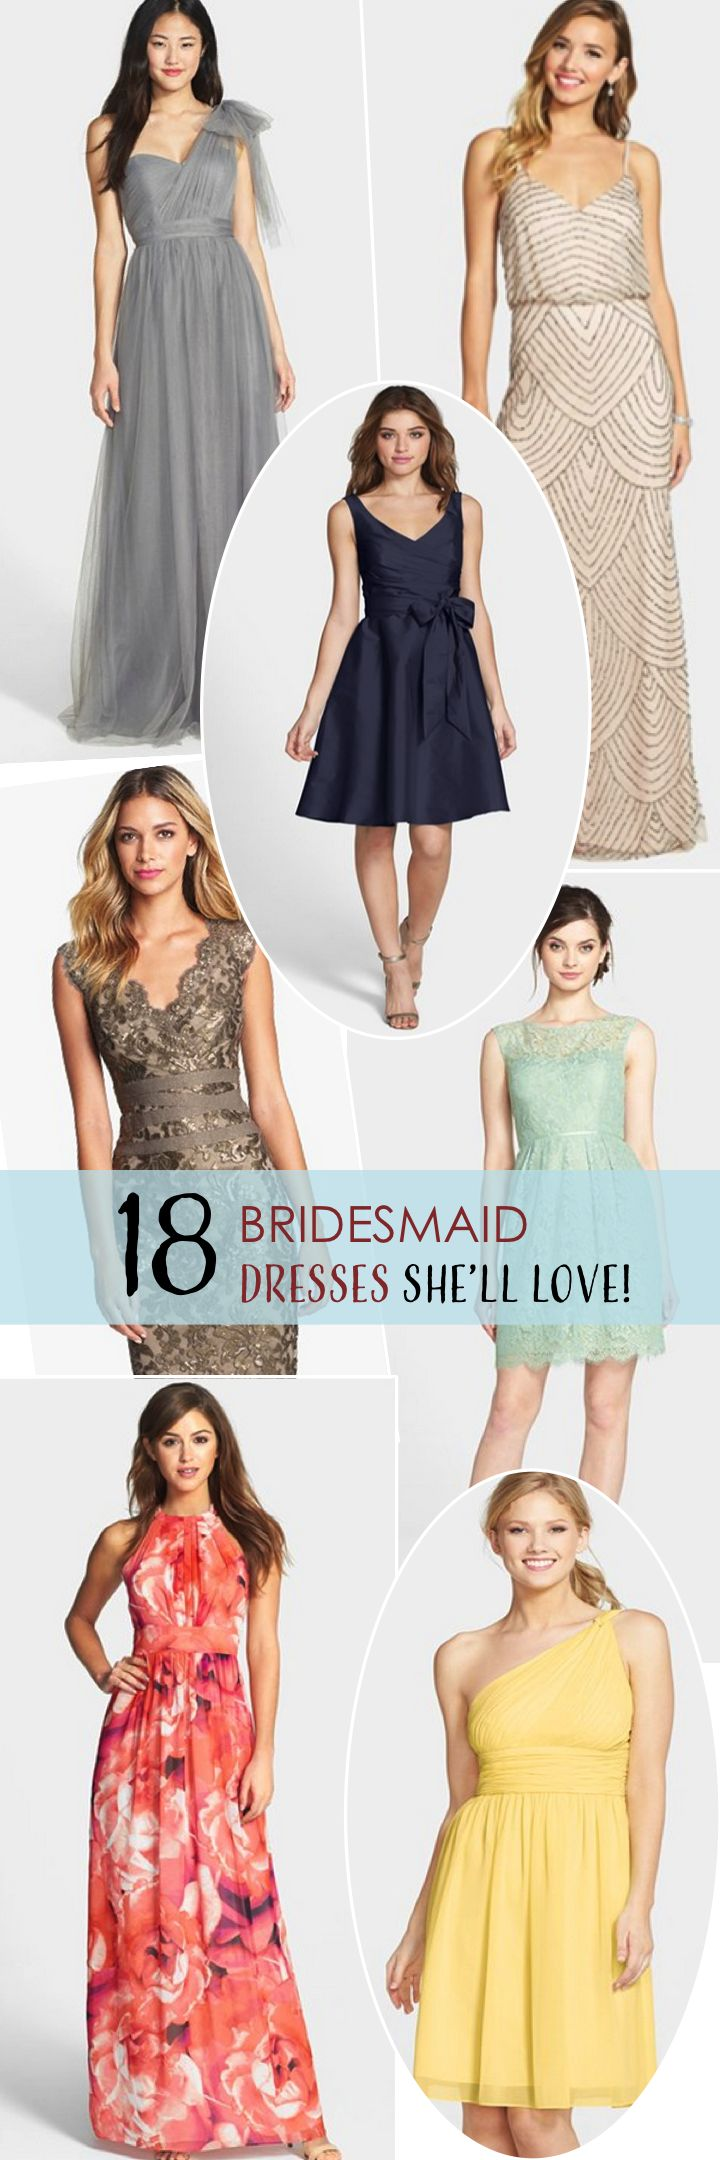 17 Best images about Bridesmaid Dresses on Pinterest - Mismatched ...